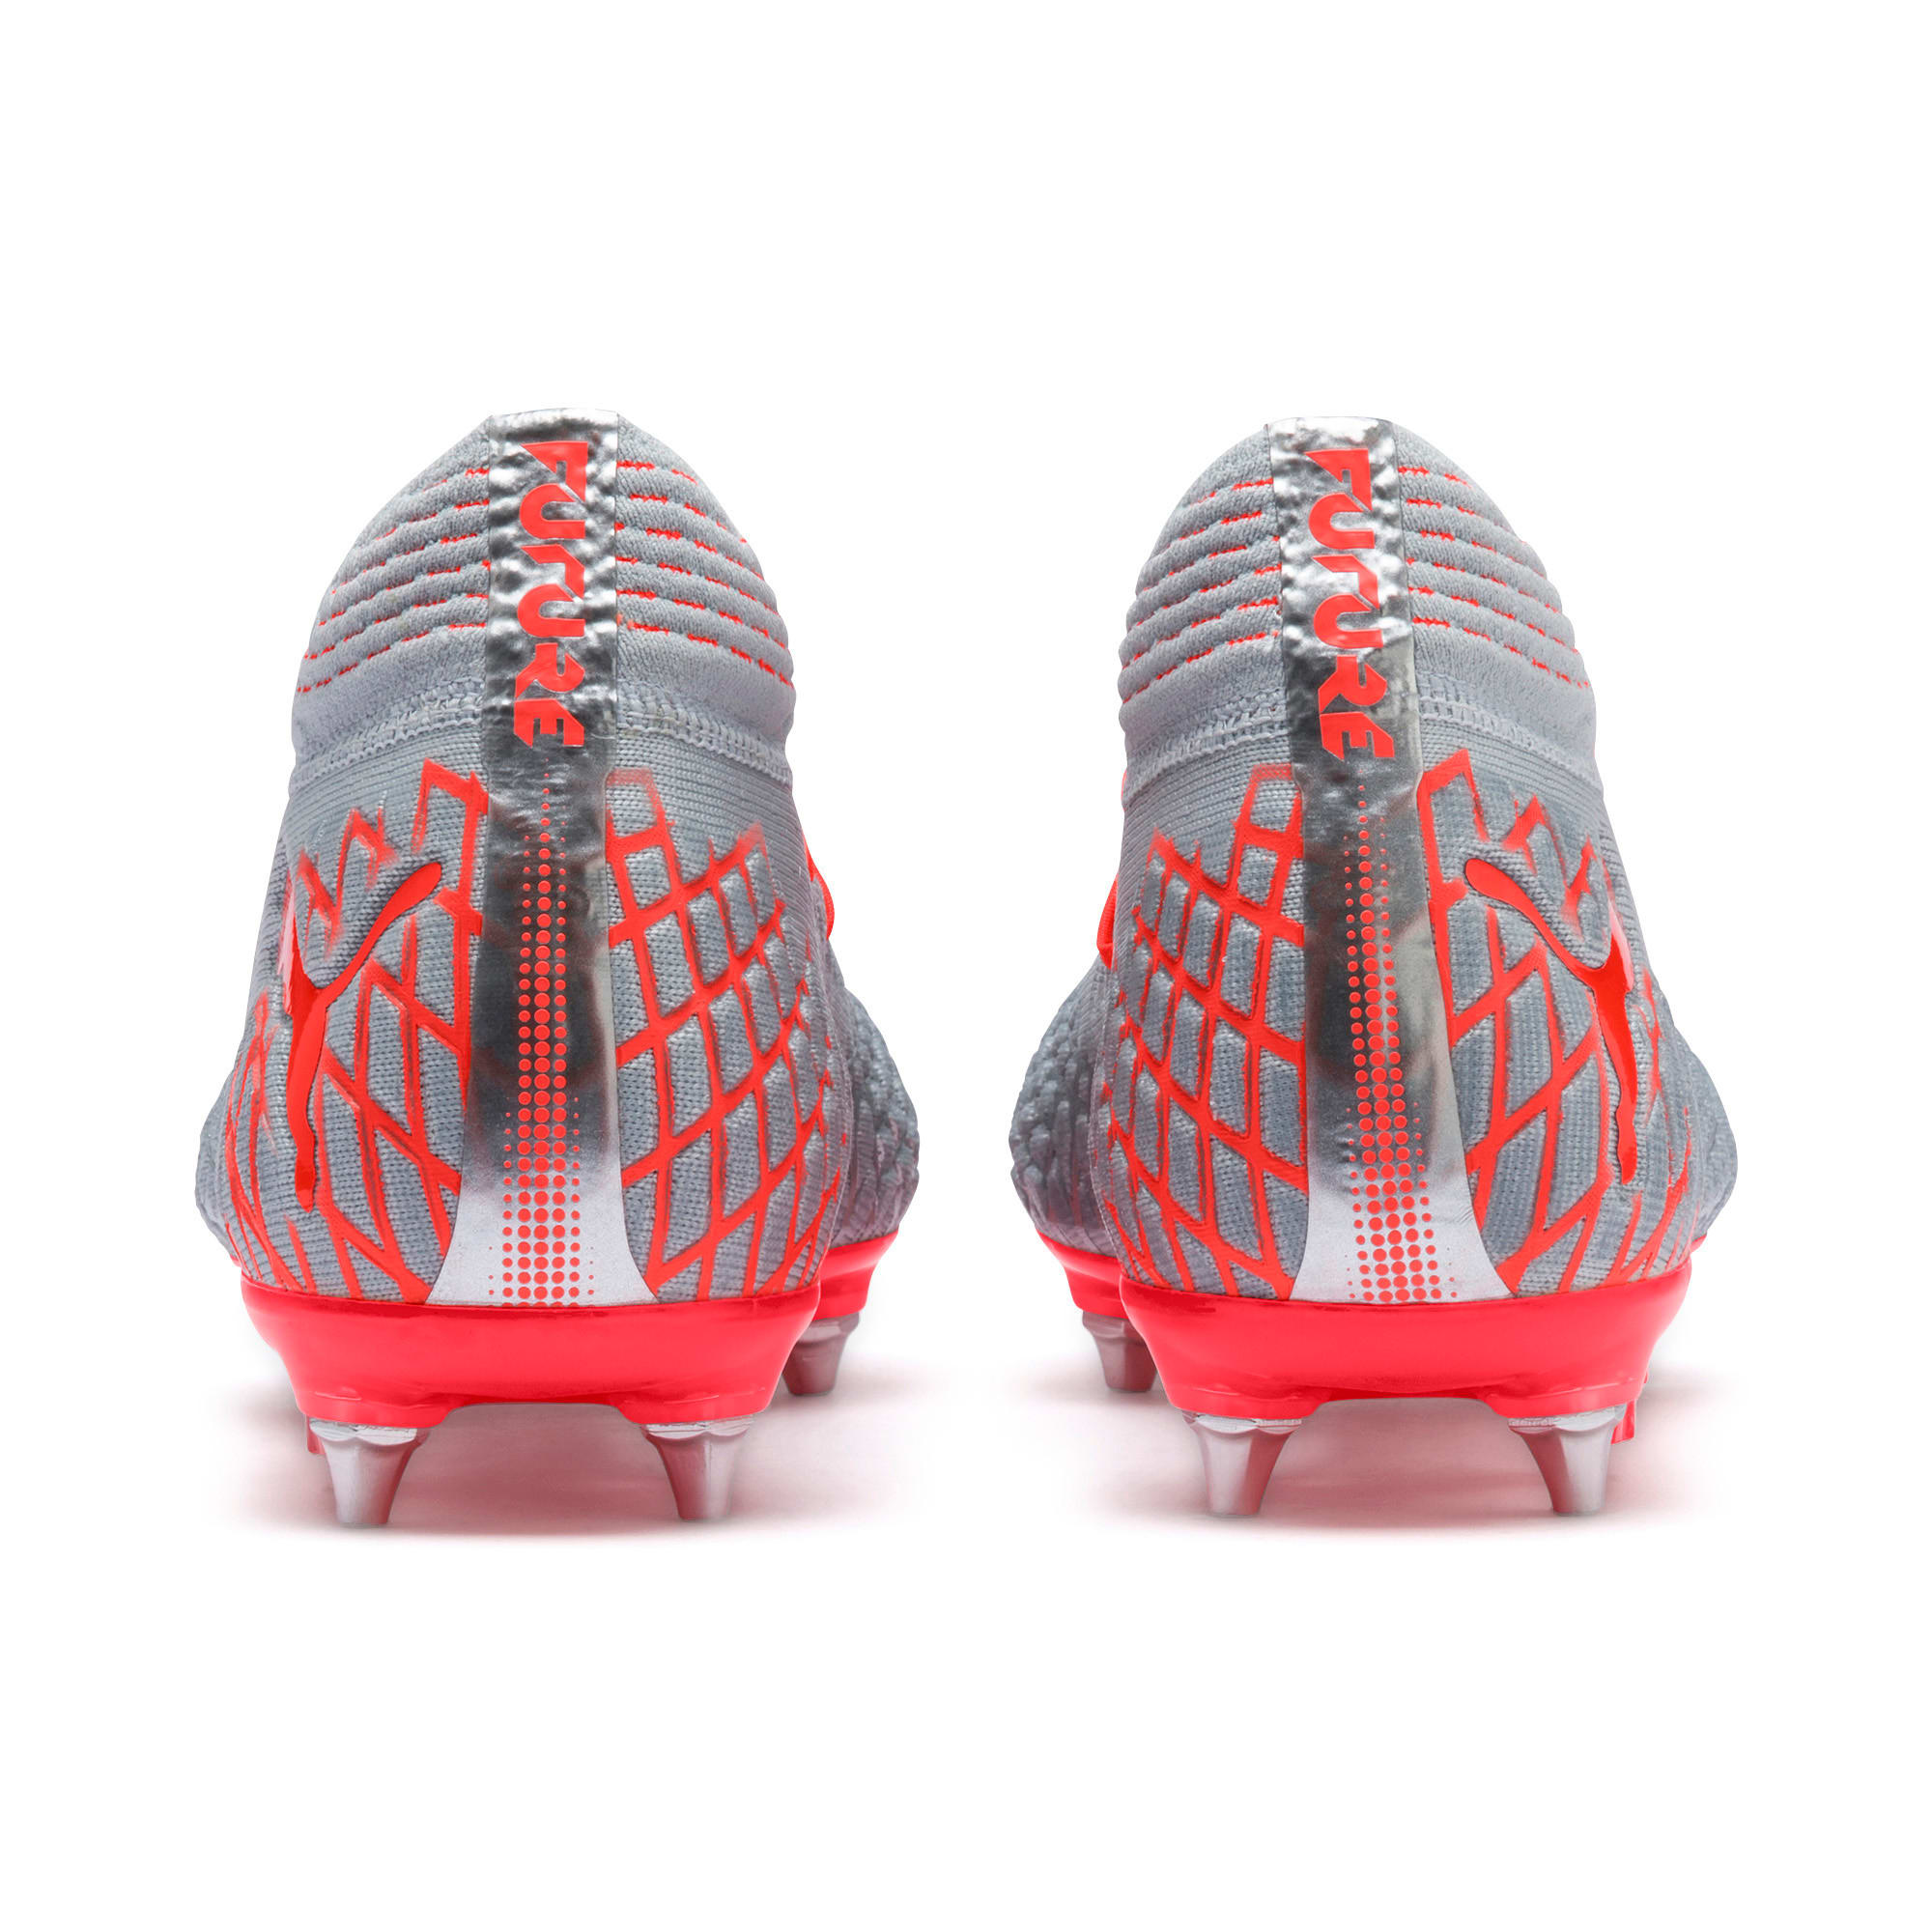 Thumbnail 4 of Chaussure de foot FUTURE 4.1 MxSG, Blue-Nrgy Red-High Risk Red, medium